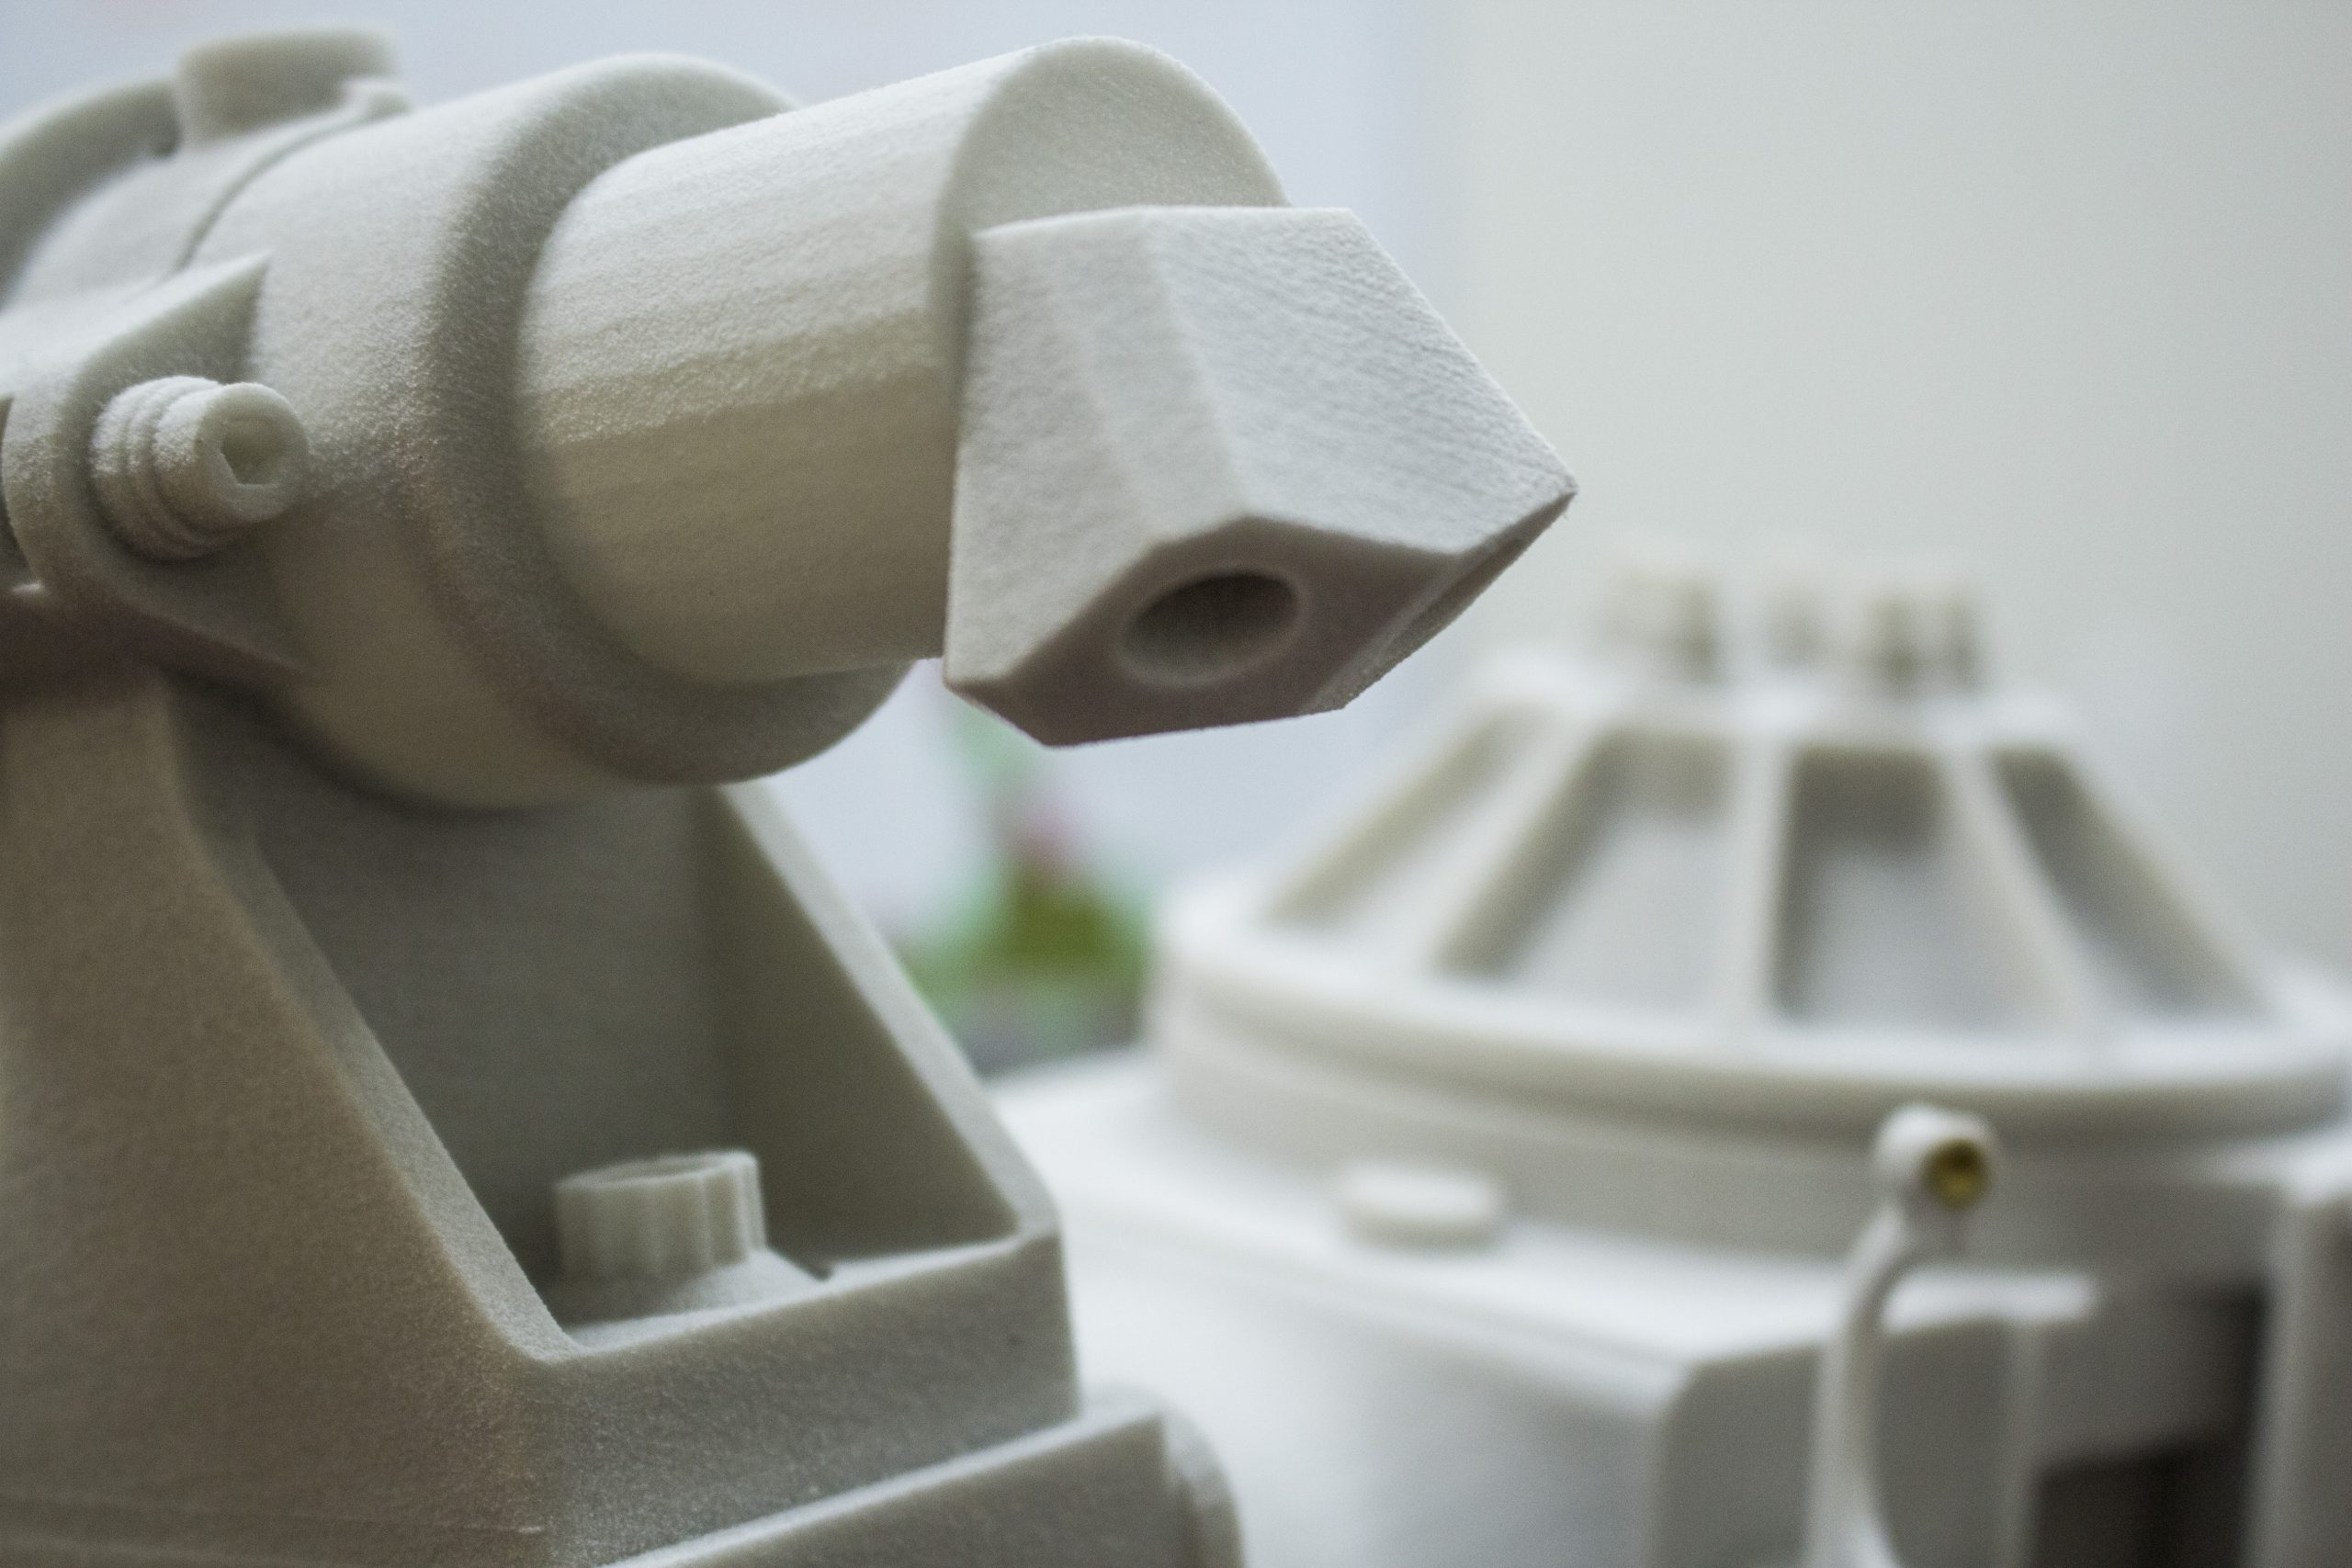 3D printed plastic parts from Xometry. Photo via Xometry.